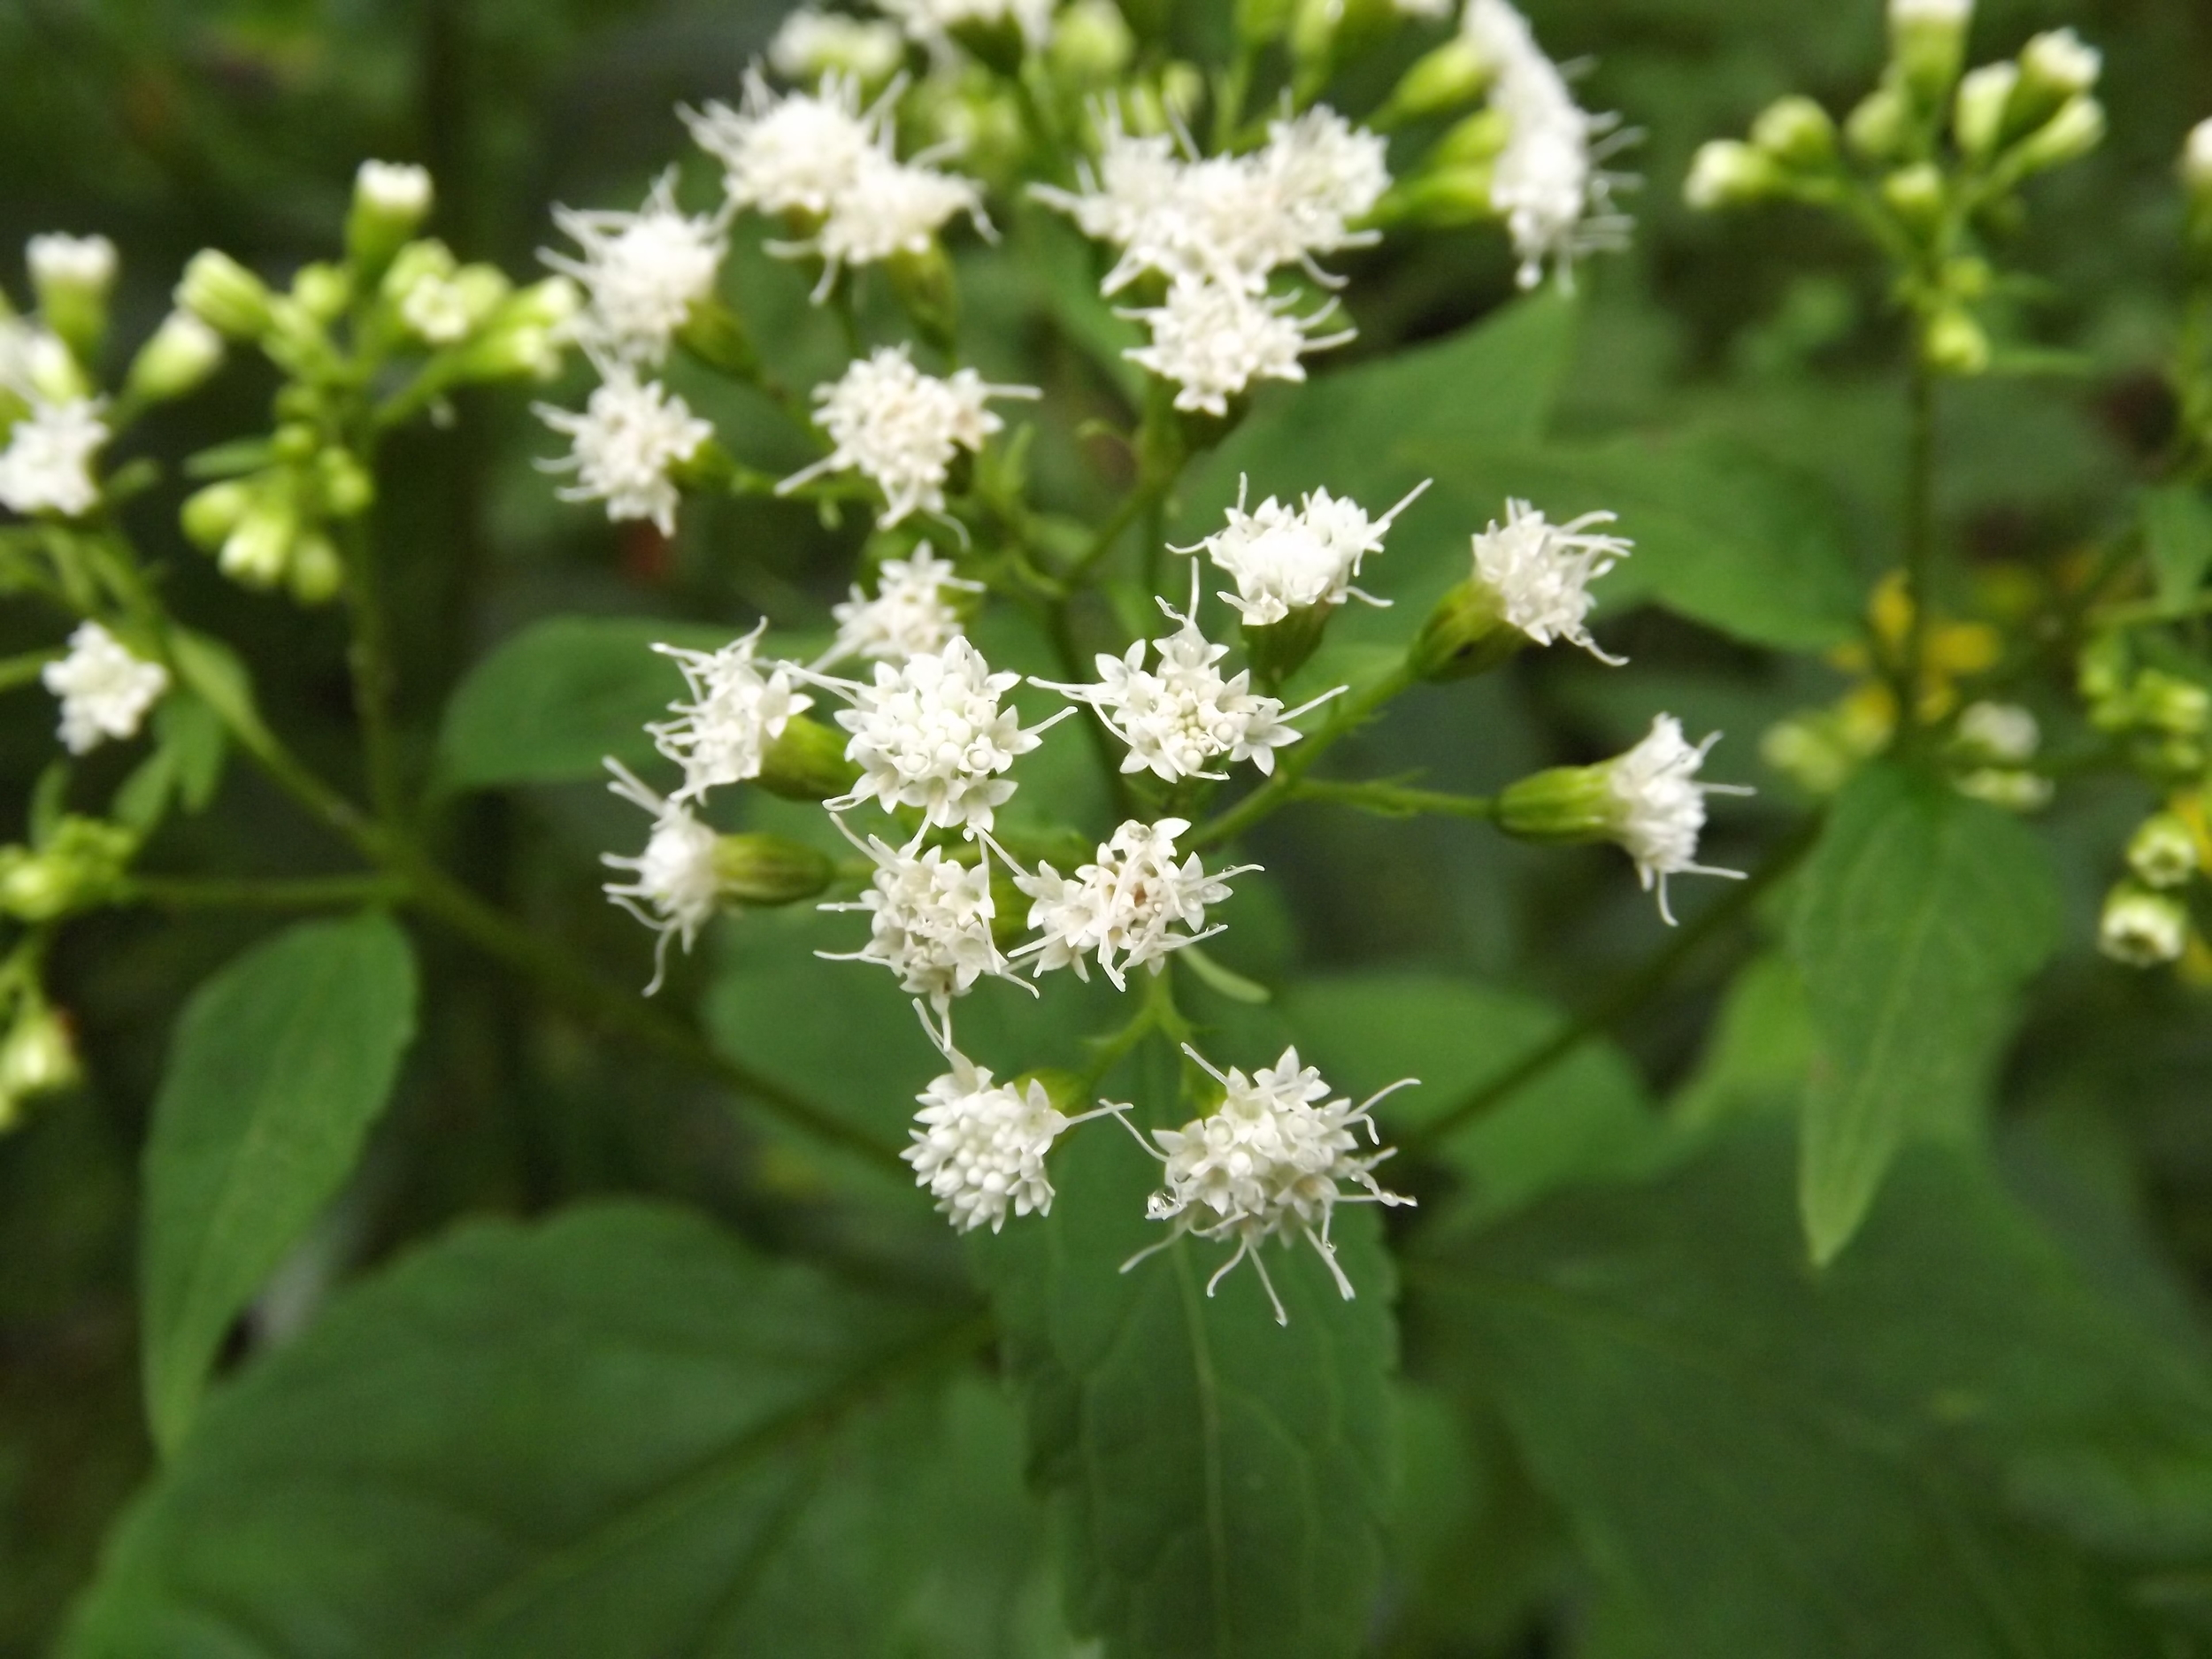 White Snakeroot ( Ageratina altissima ) - White Snakeroot got its name from its early use to treat snake bites. Strangely though, I also read that it is toxic, which seems odd given its use medicinally. Either way, its attractive white blossoms are actually clusters of tiny flowers in an arrangement that resembles Queen Anne's Lace.